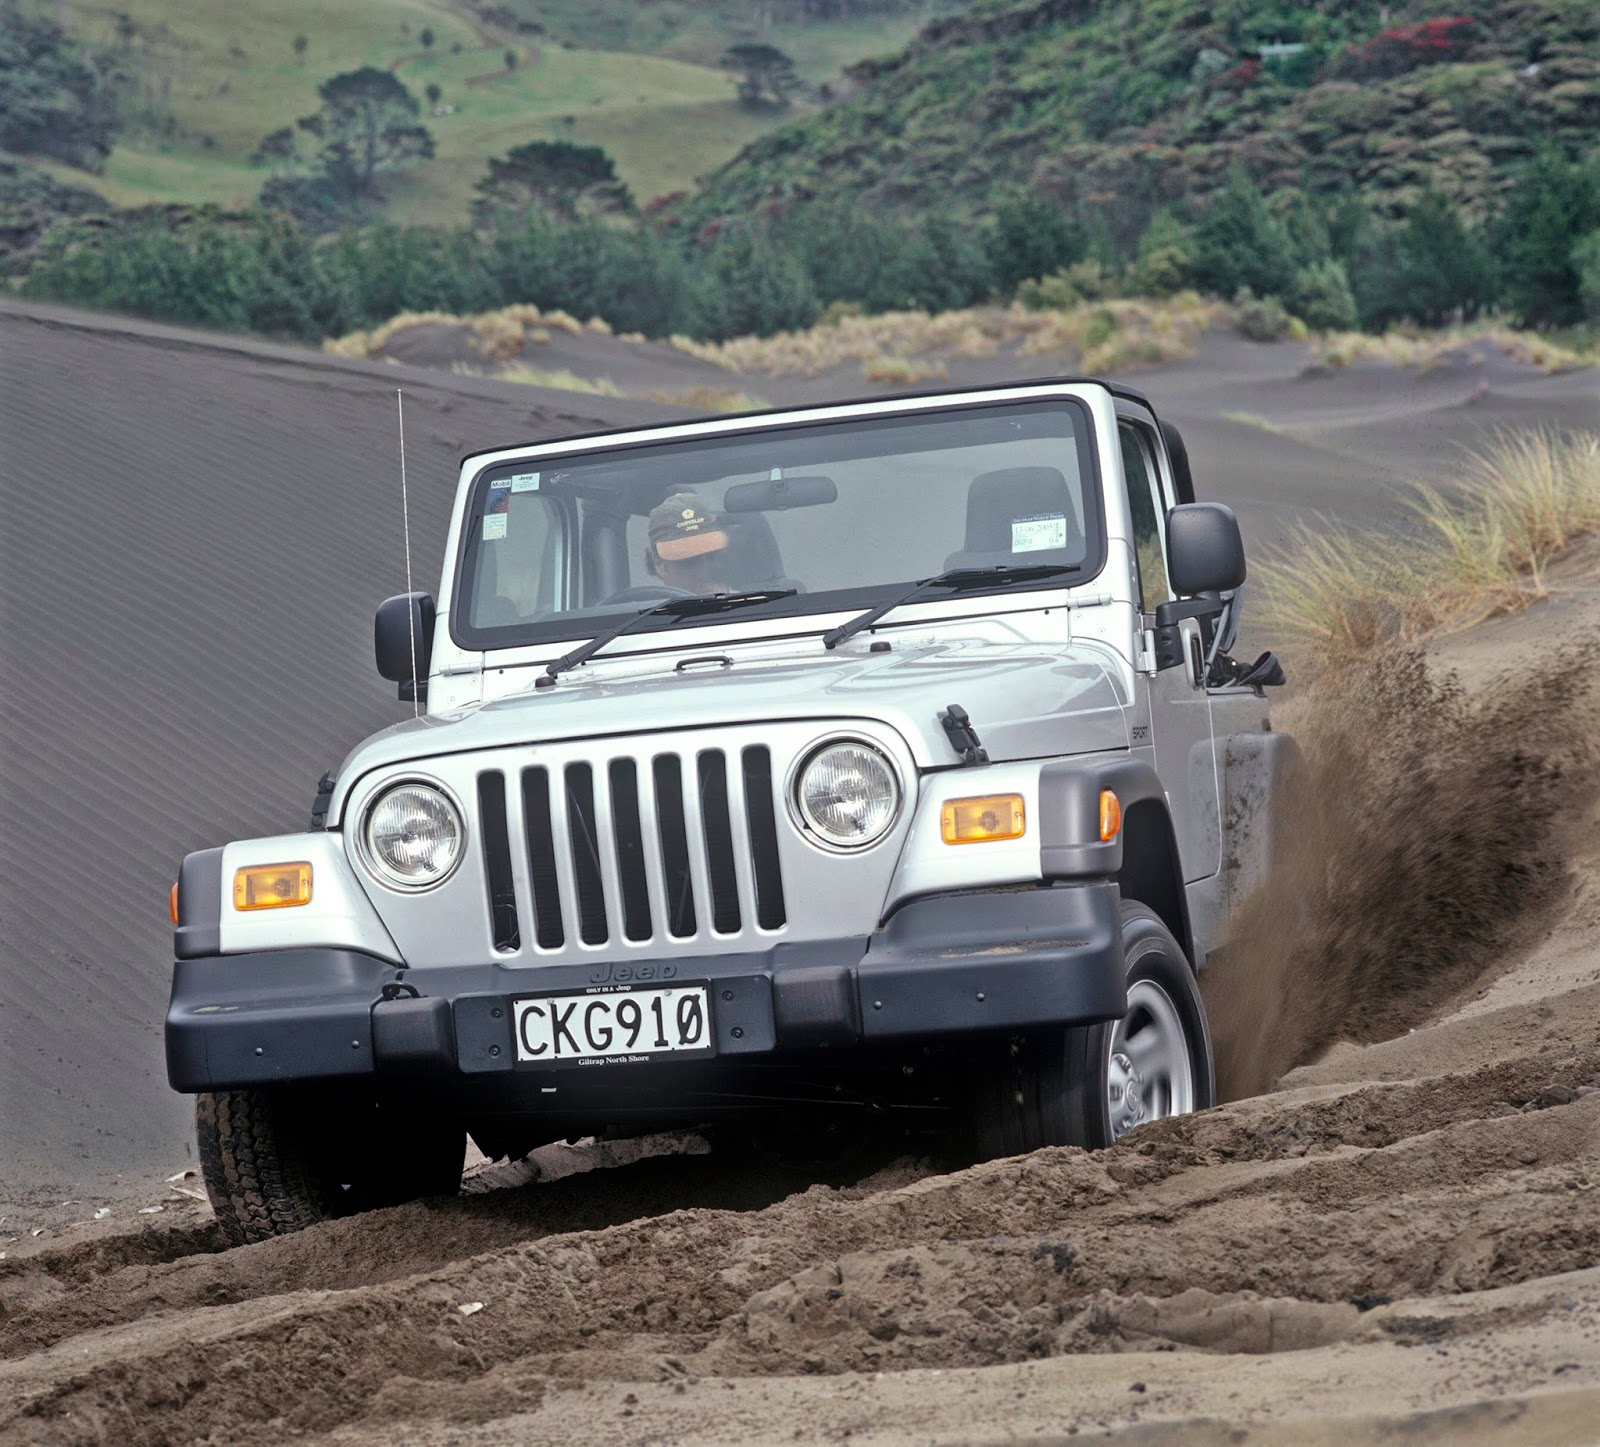 4WD Newz: Ten Years Ago, When The Wrangler Got A Six Speed